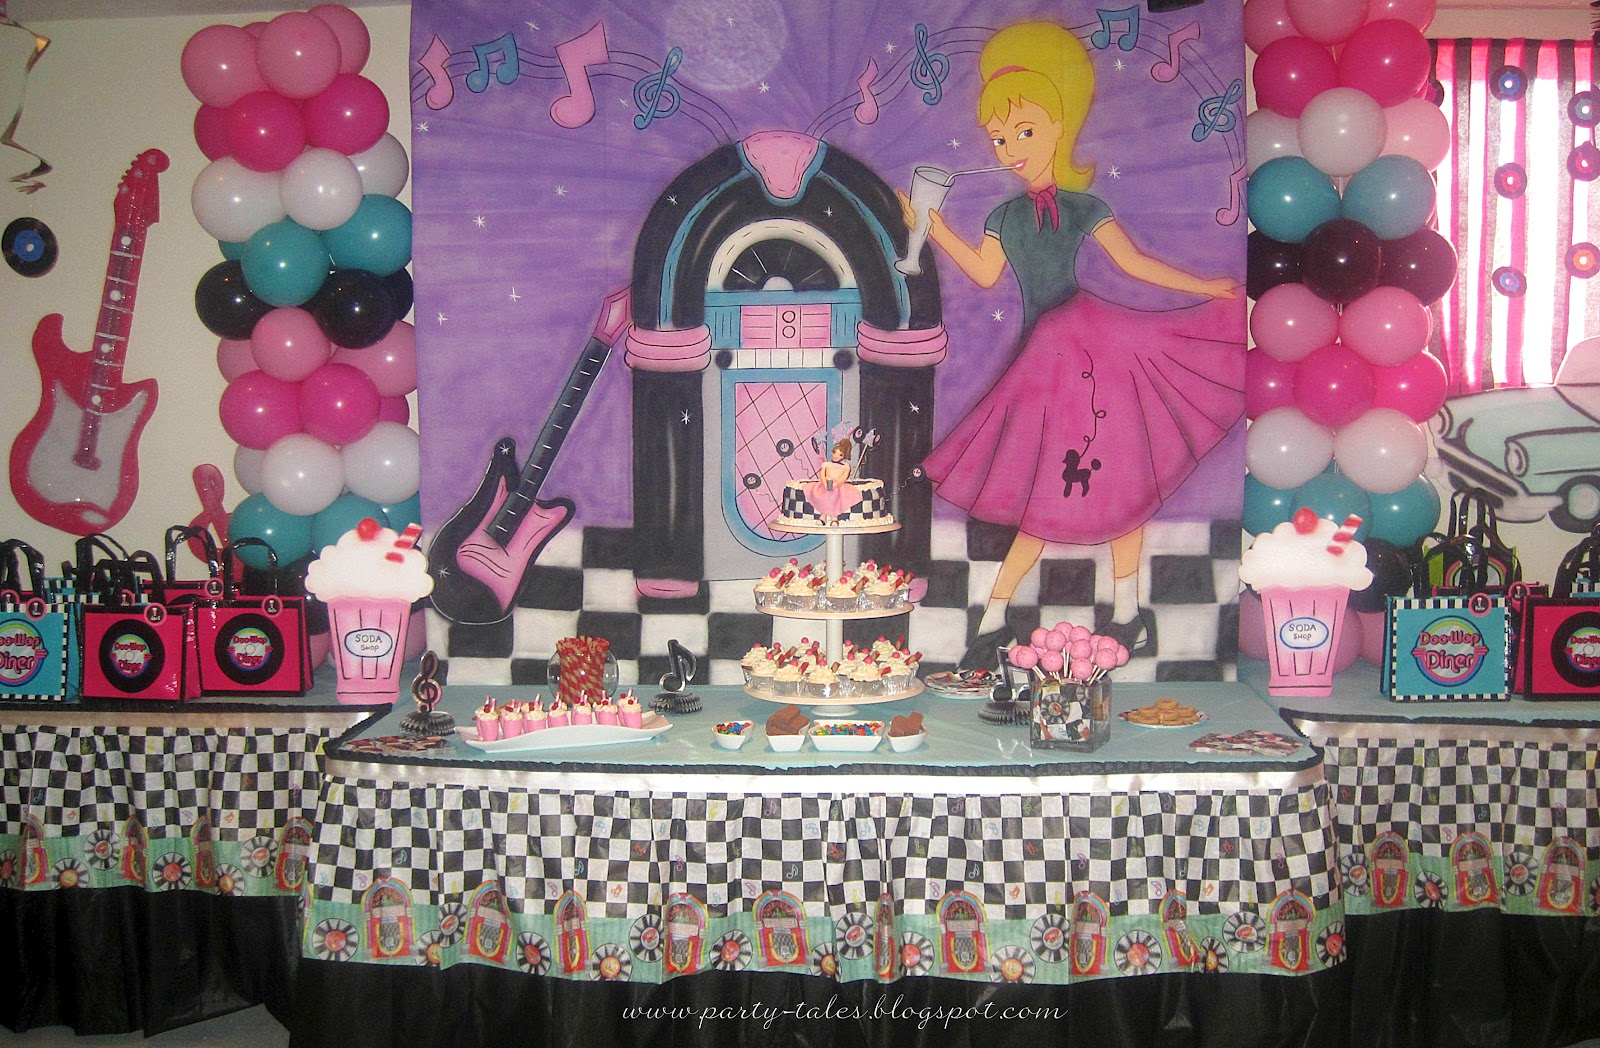 Top 1950 sock hop background wallpapers for 50s party decoration